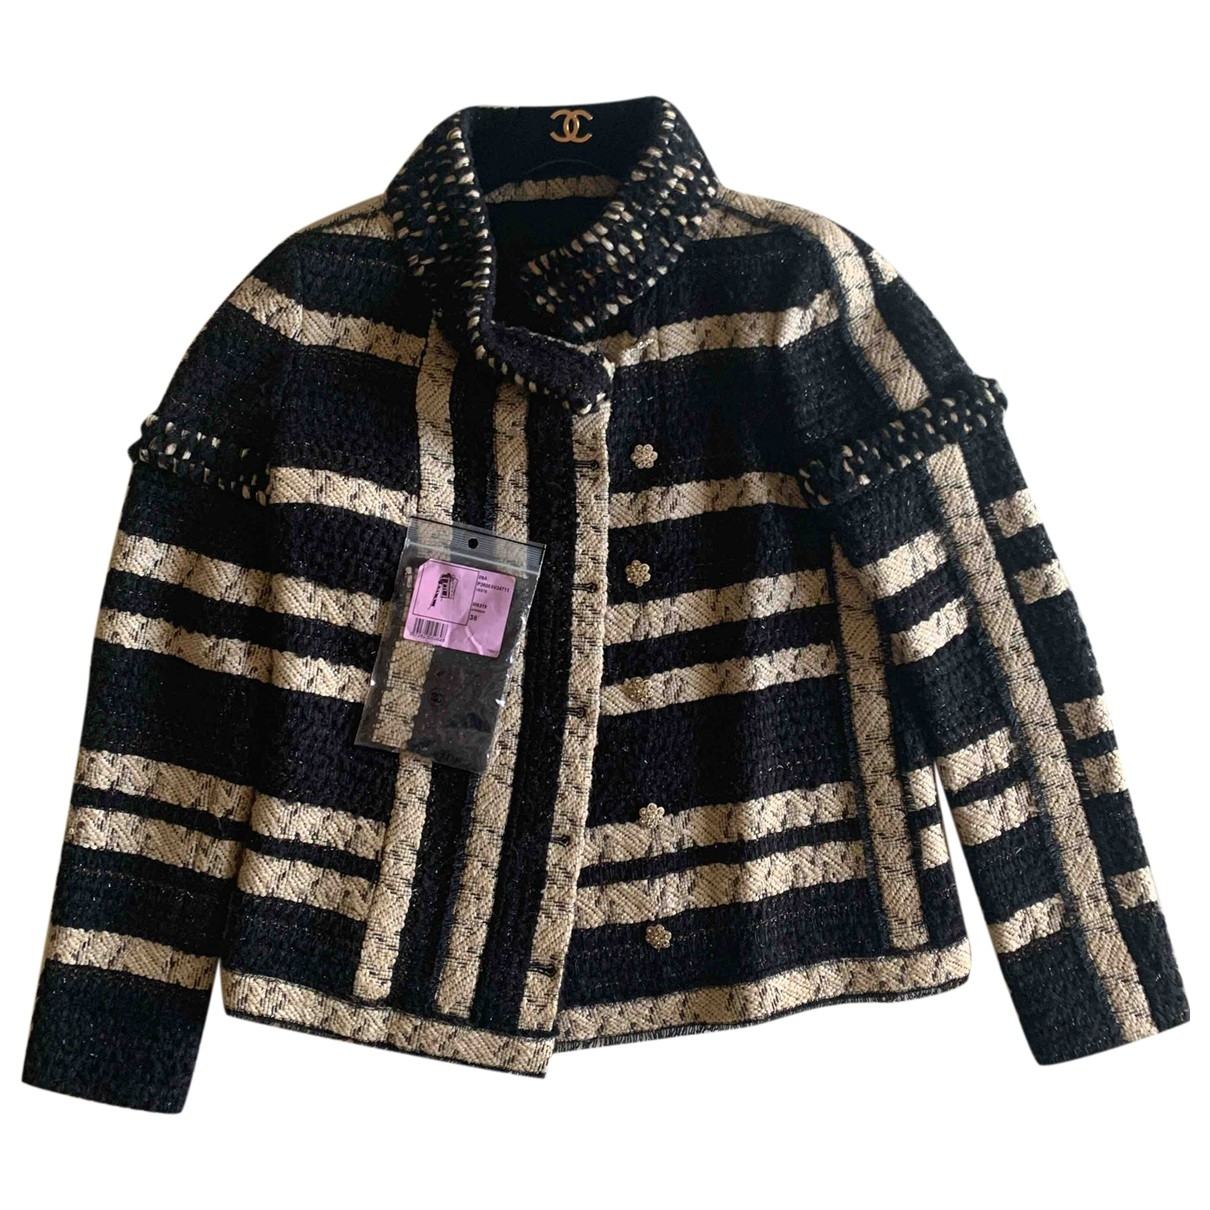 Chanel \N Cotton jacket for Women 38 FR